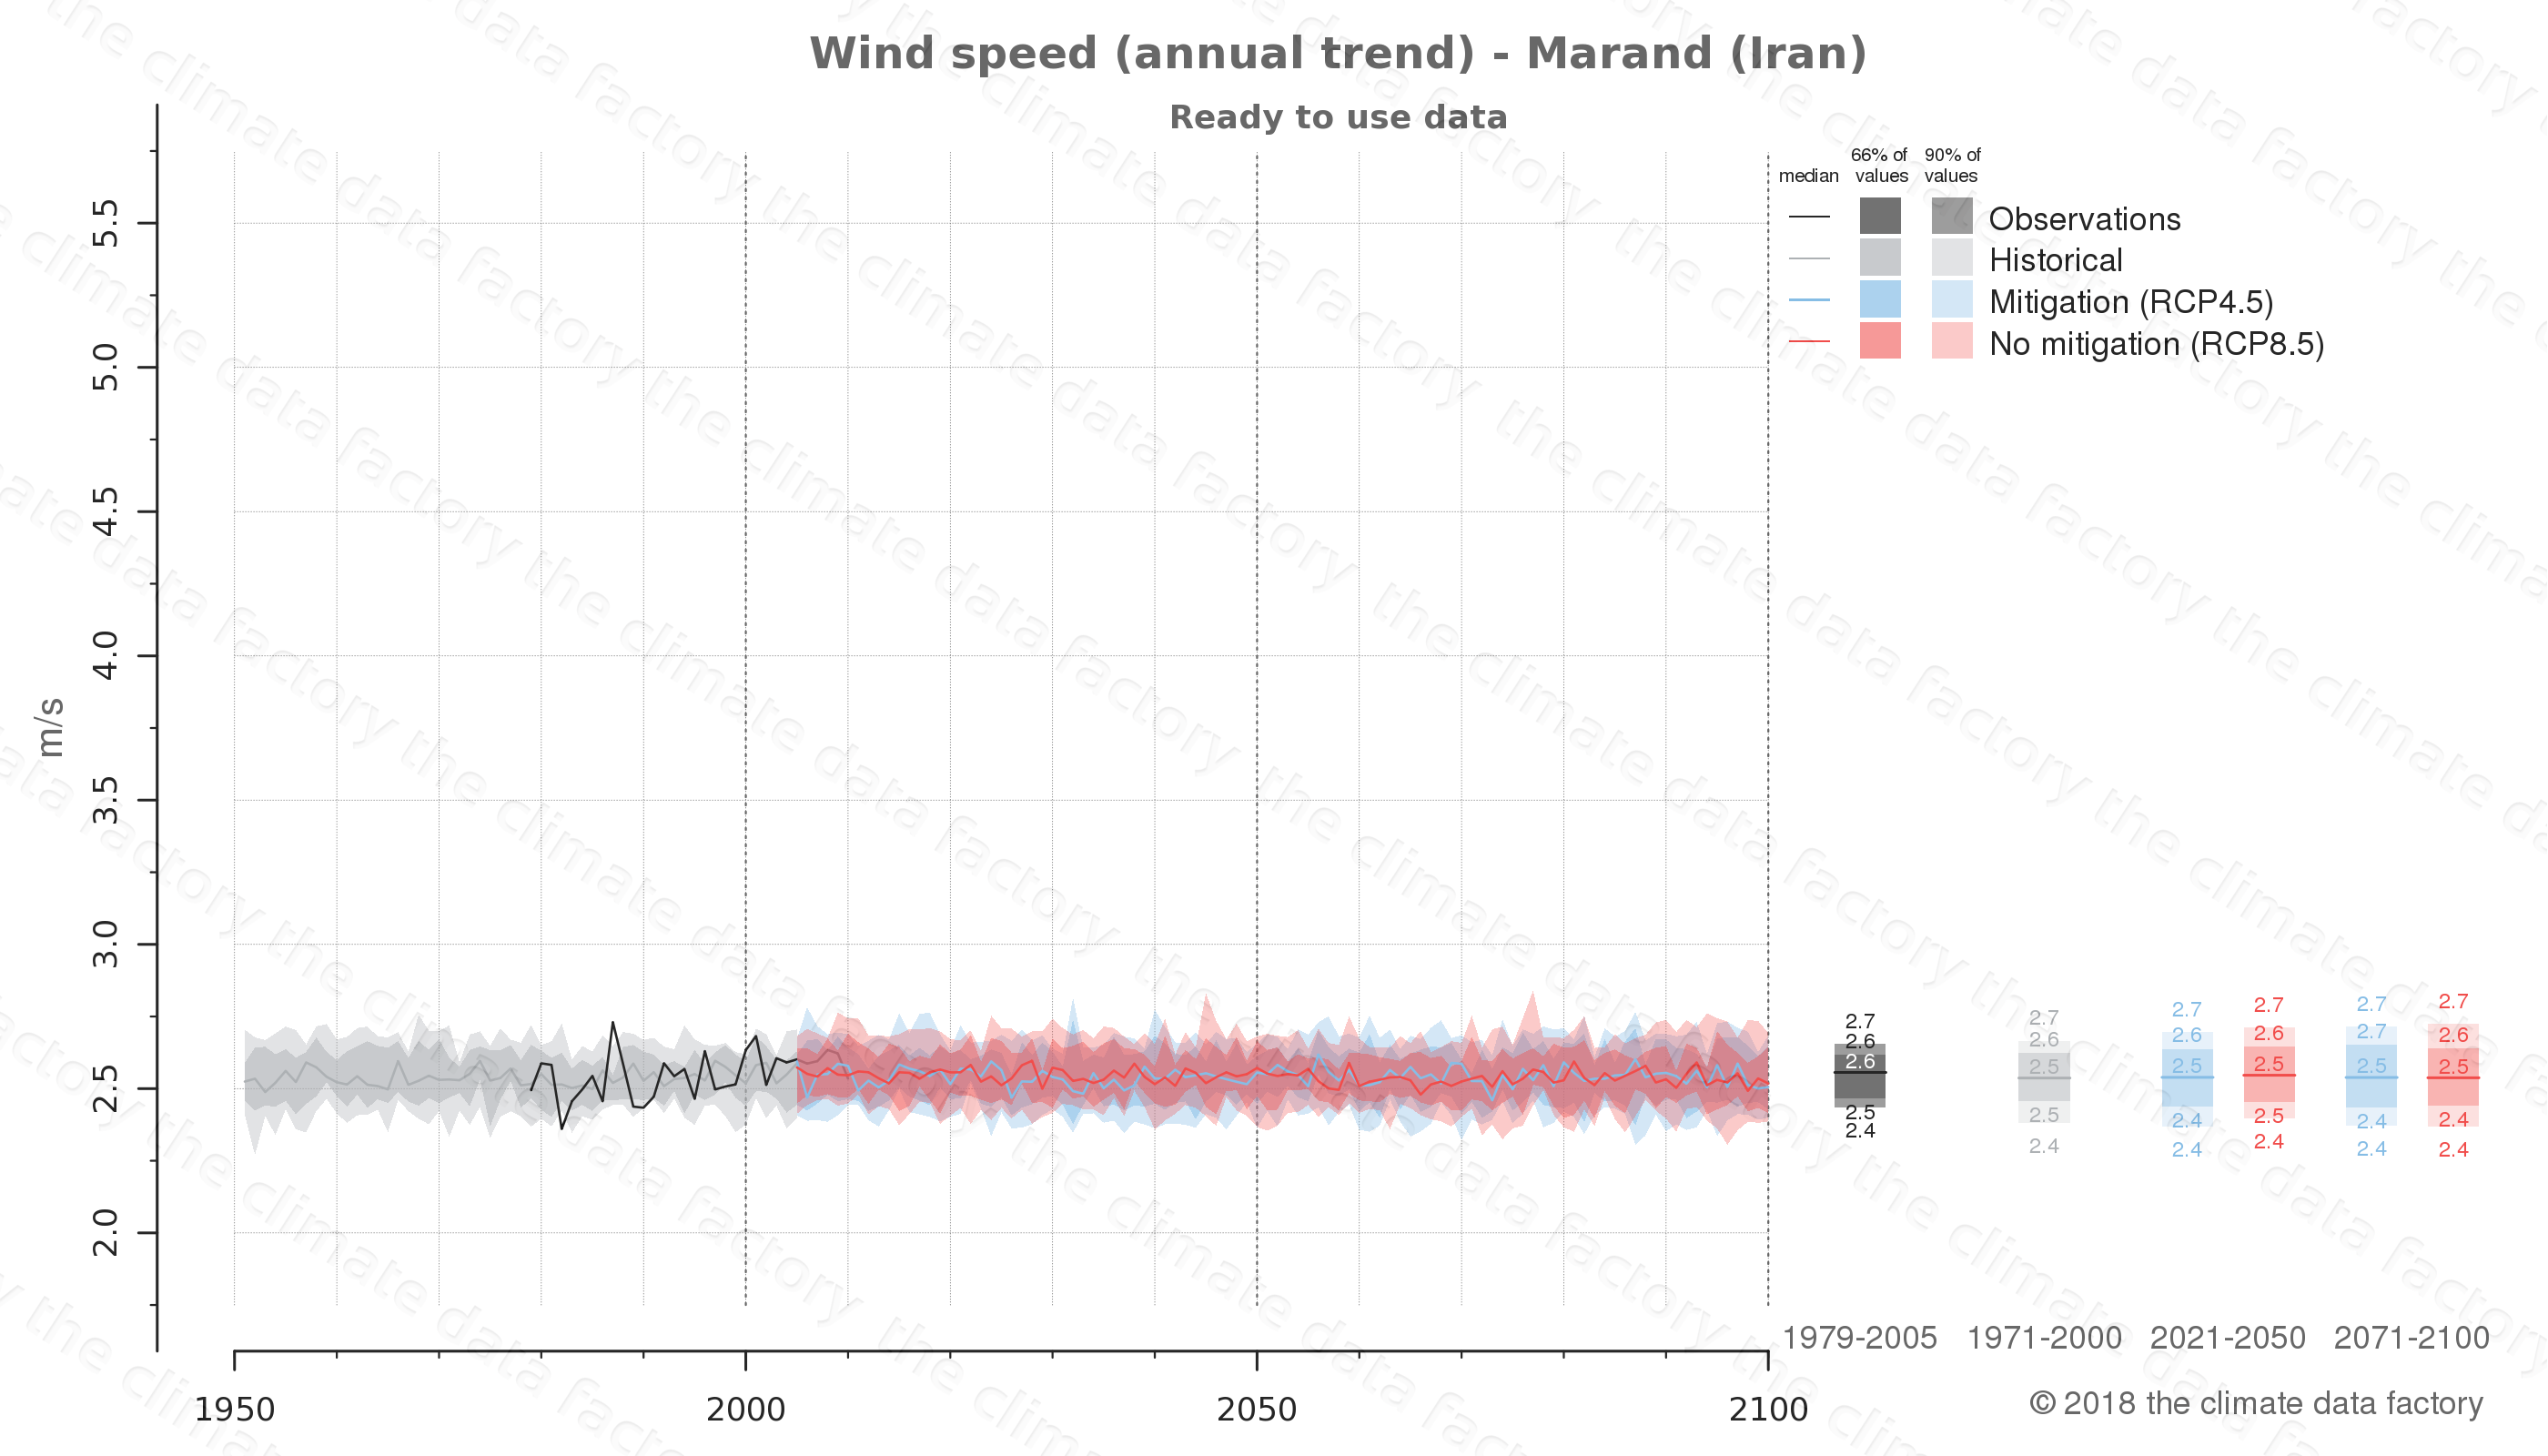 climate change data policy adaptation climate graph city data wind-speed marand iran